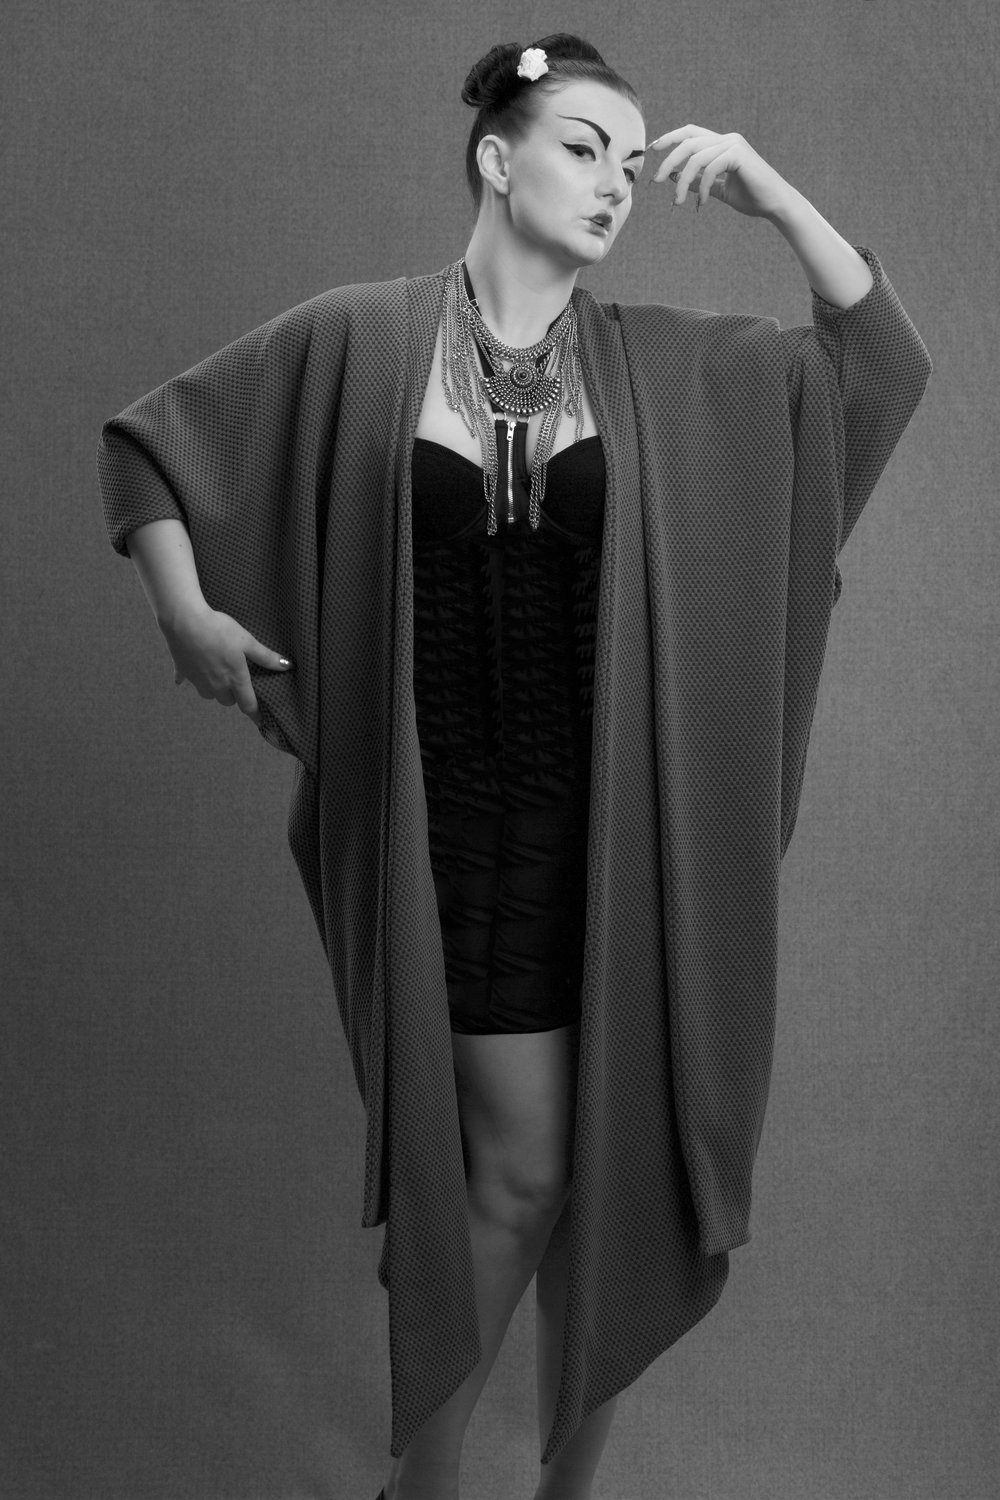 zaramia-ava-zaramiaava-leeds-fashion-designer-ethical-sustainable-grey-drape-ayame-jacket-noa-geshia-black-white-4